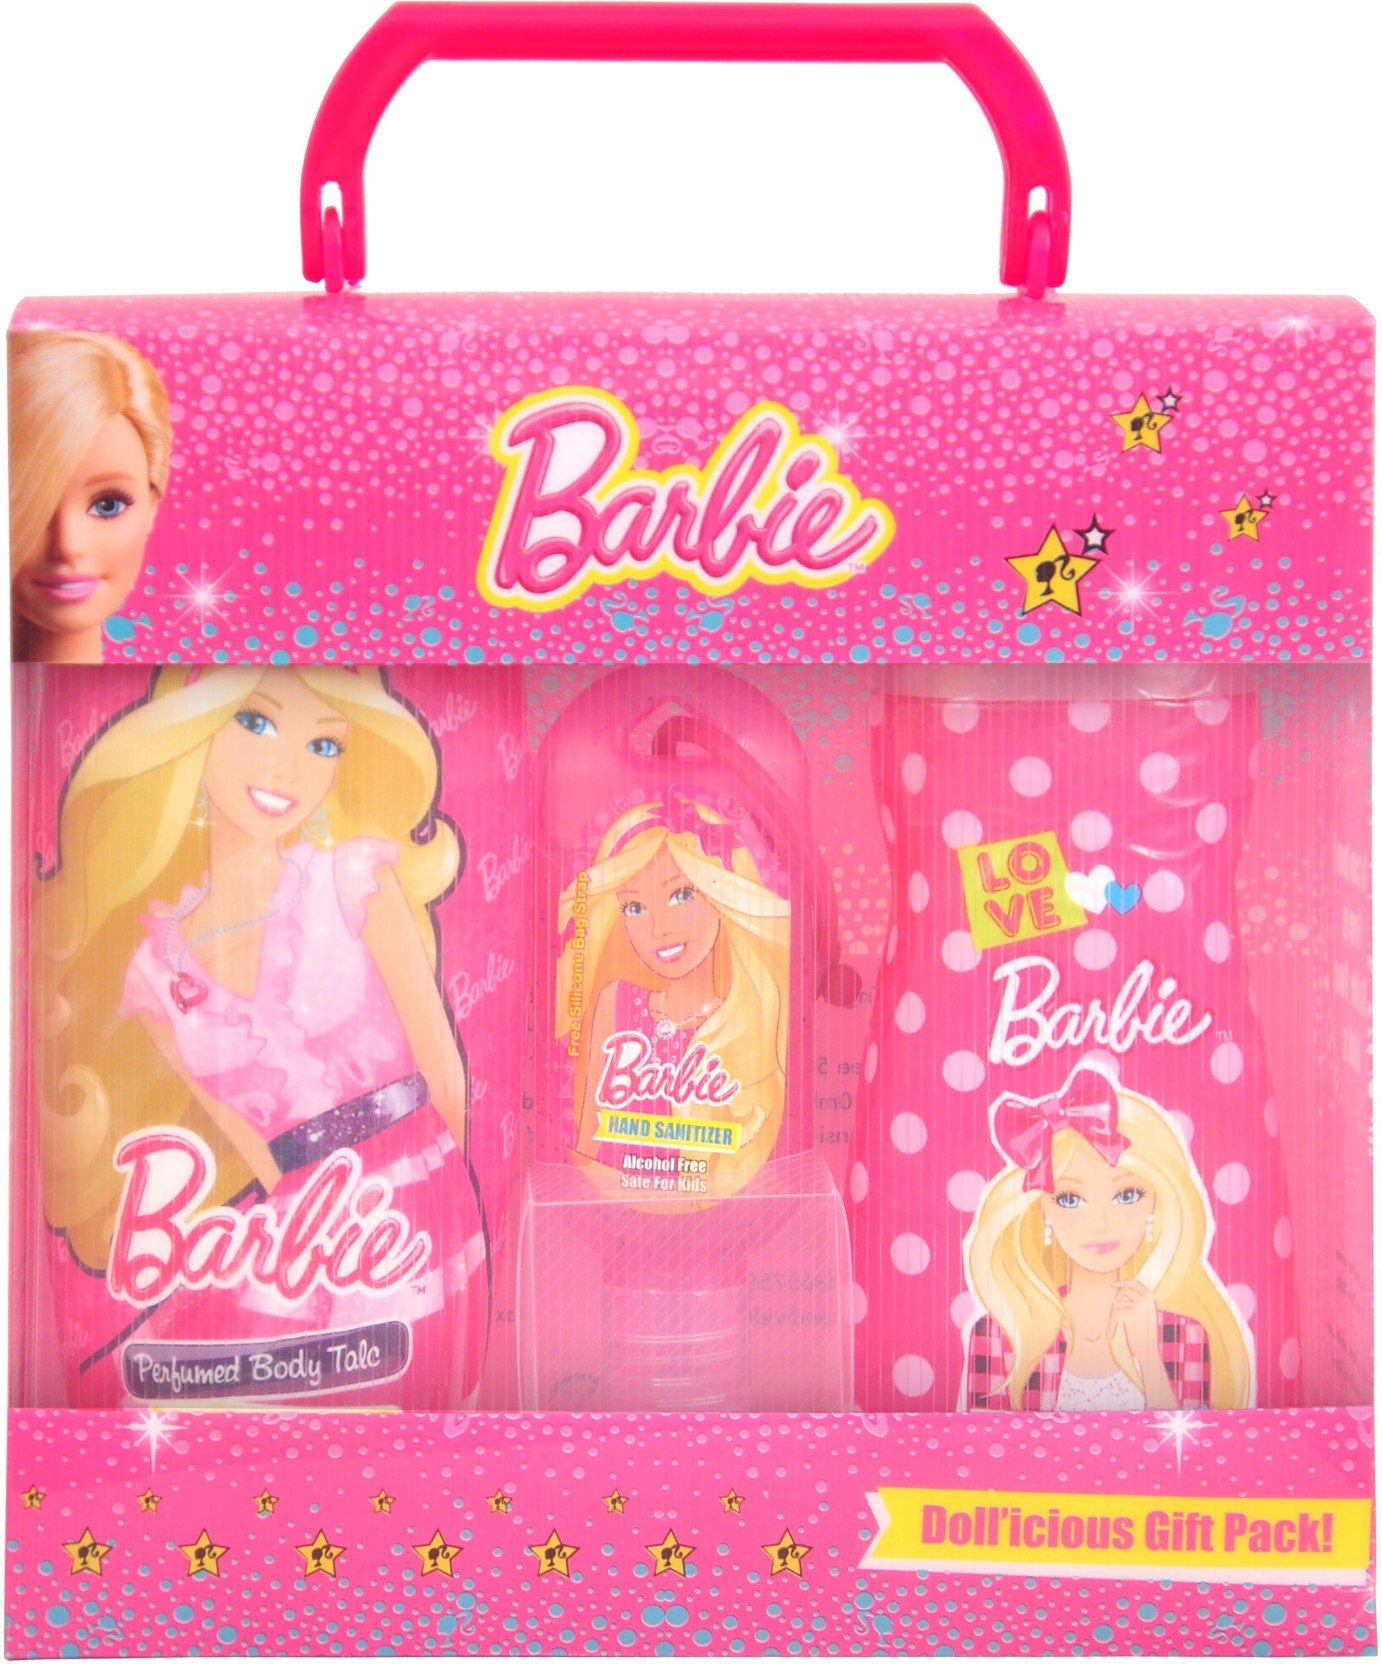 Barbie Doll Icious Special Gift Pack Buy Baby Care Combo In